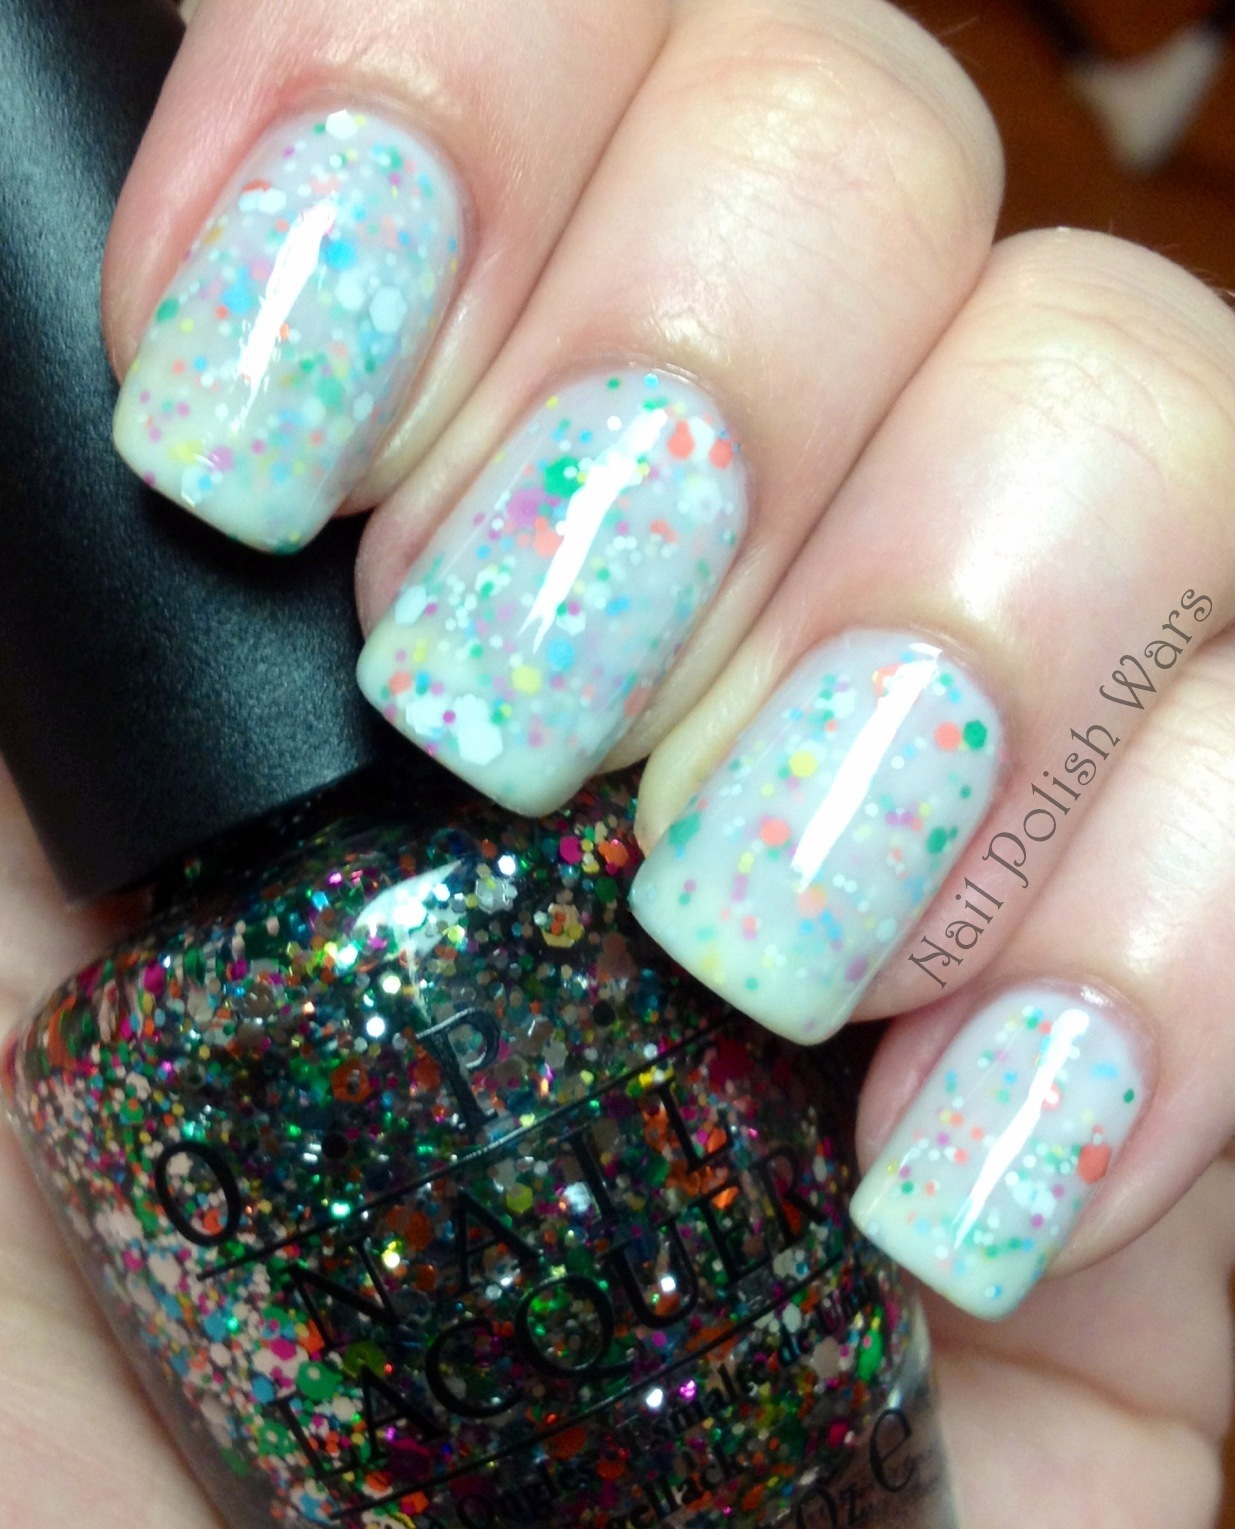 Birthday Cake Nails: Nail Polish Wars: Birthday Cake Fun-fetti